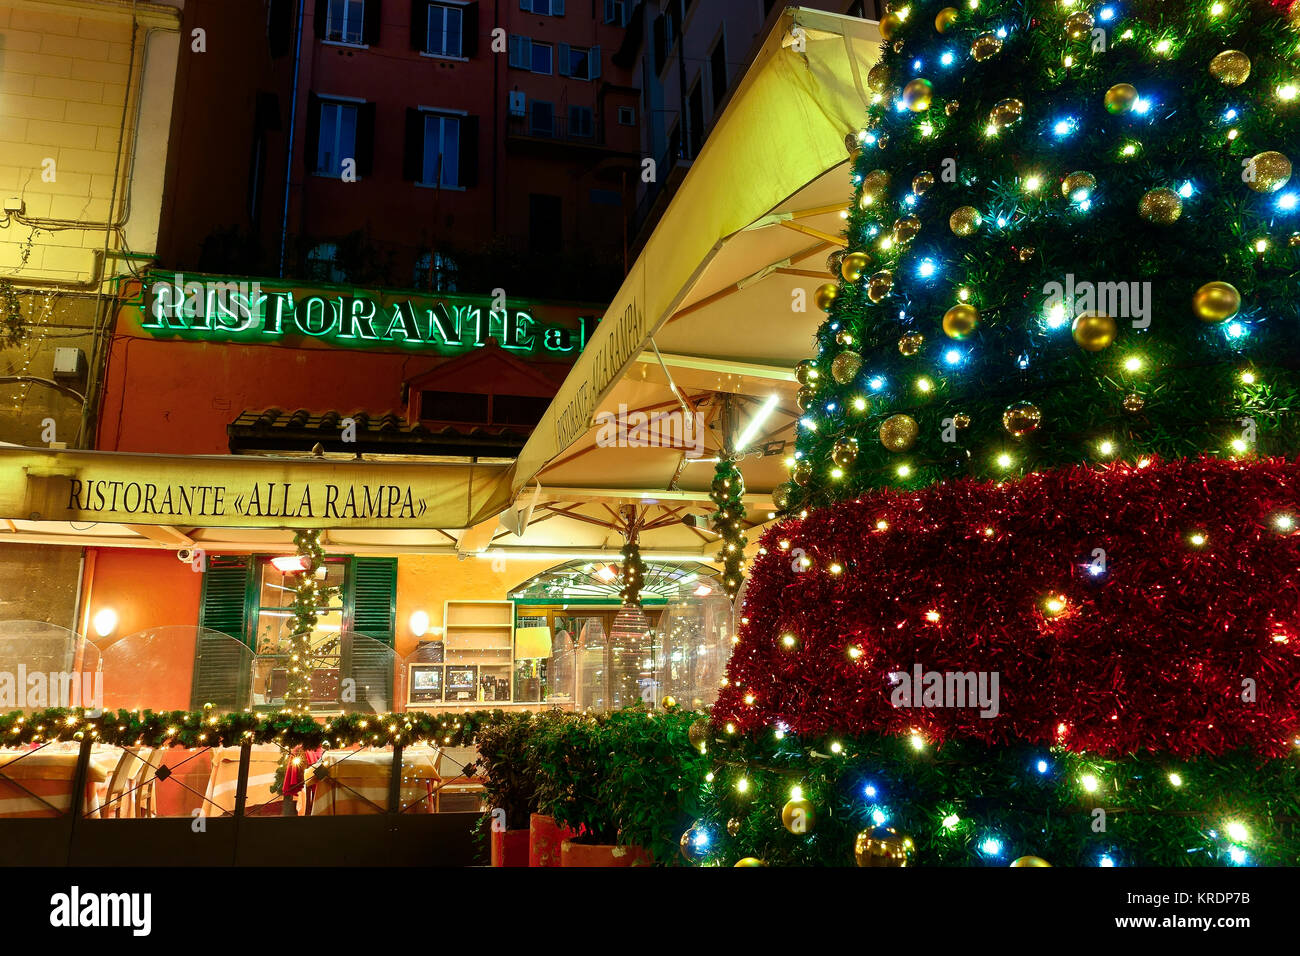 Decoration Restaurant Italien Italy Christmas Stock Photos And Italy Christmas Stock